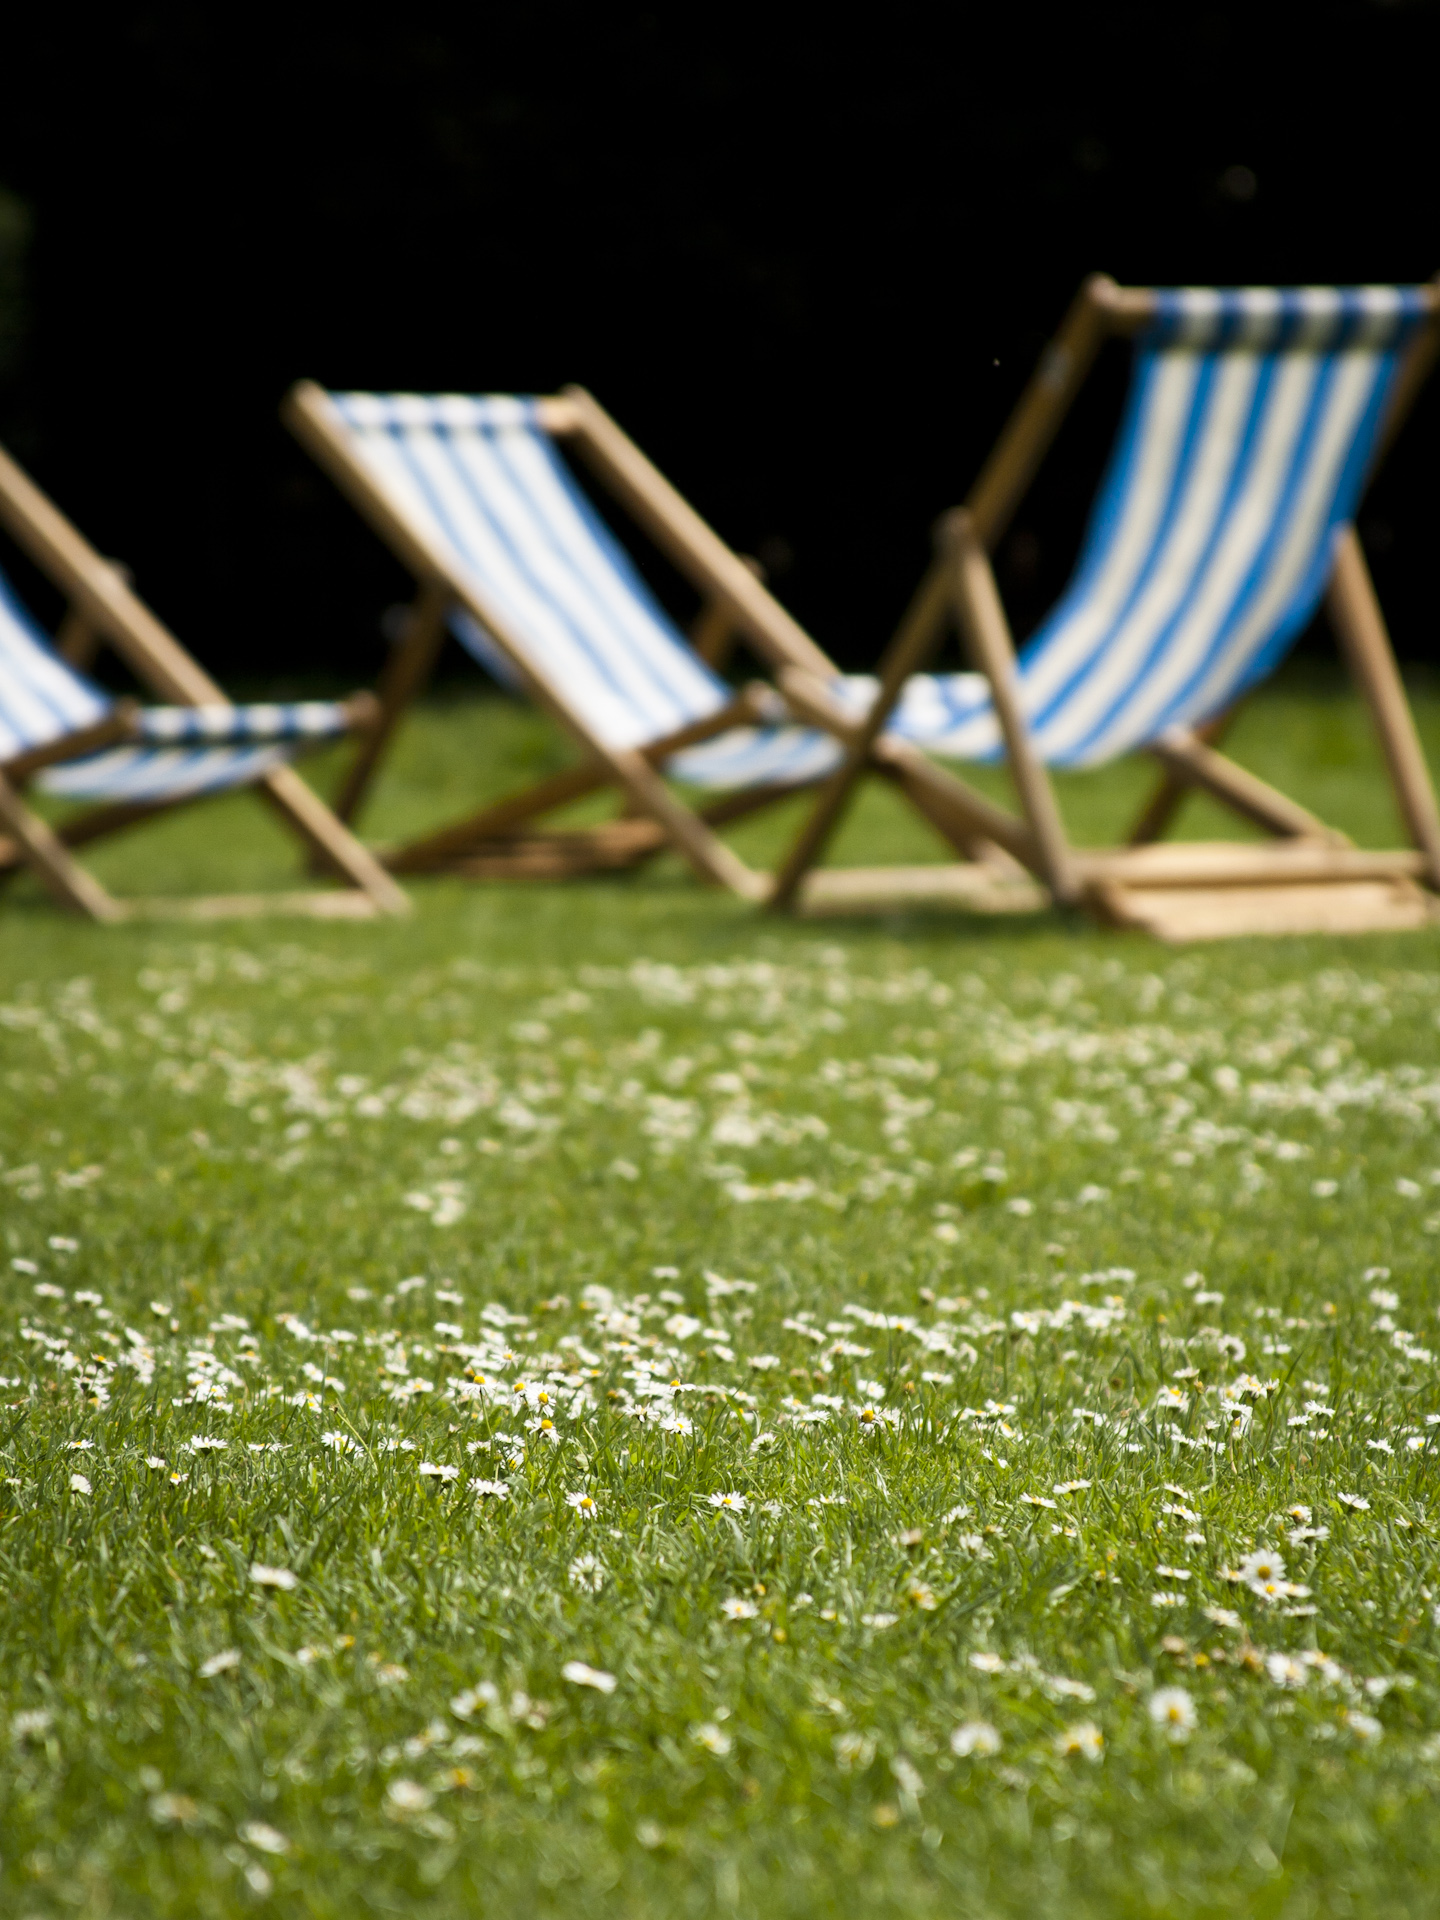 Deck chairs in a London park